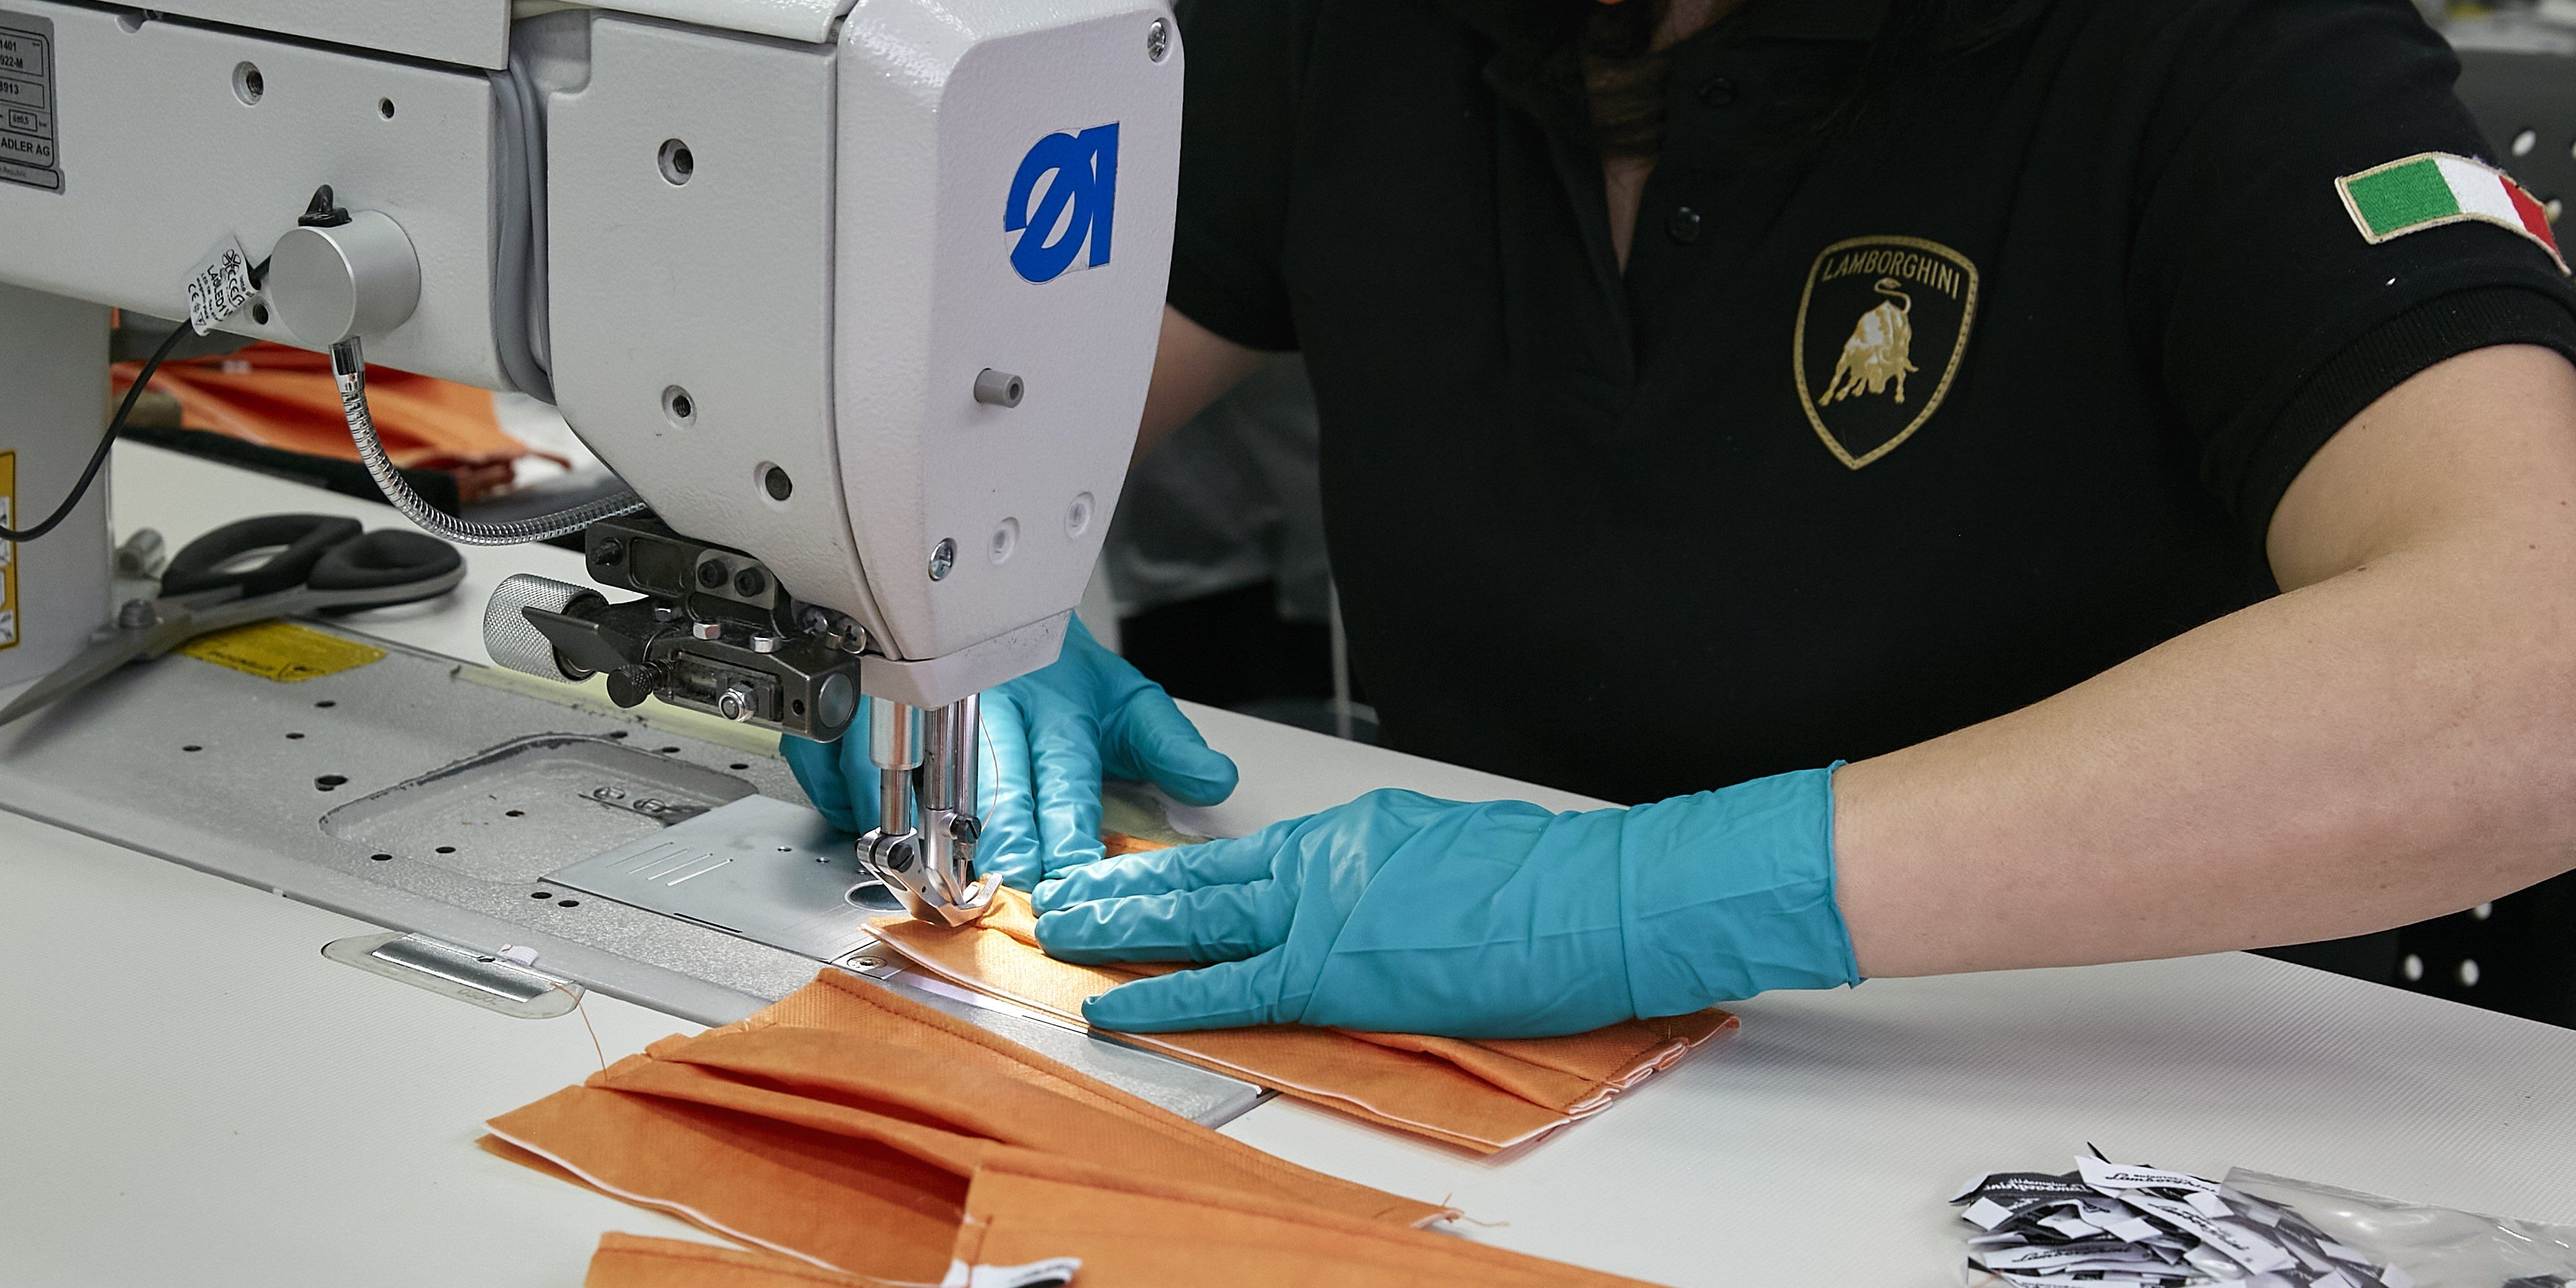 Lamborghini is Hand Stitching Masks and 3D-Printing Face Shields